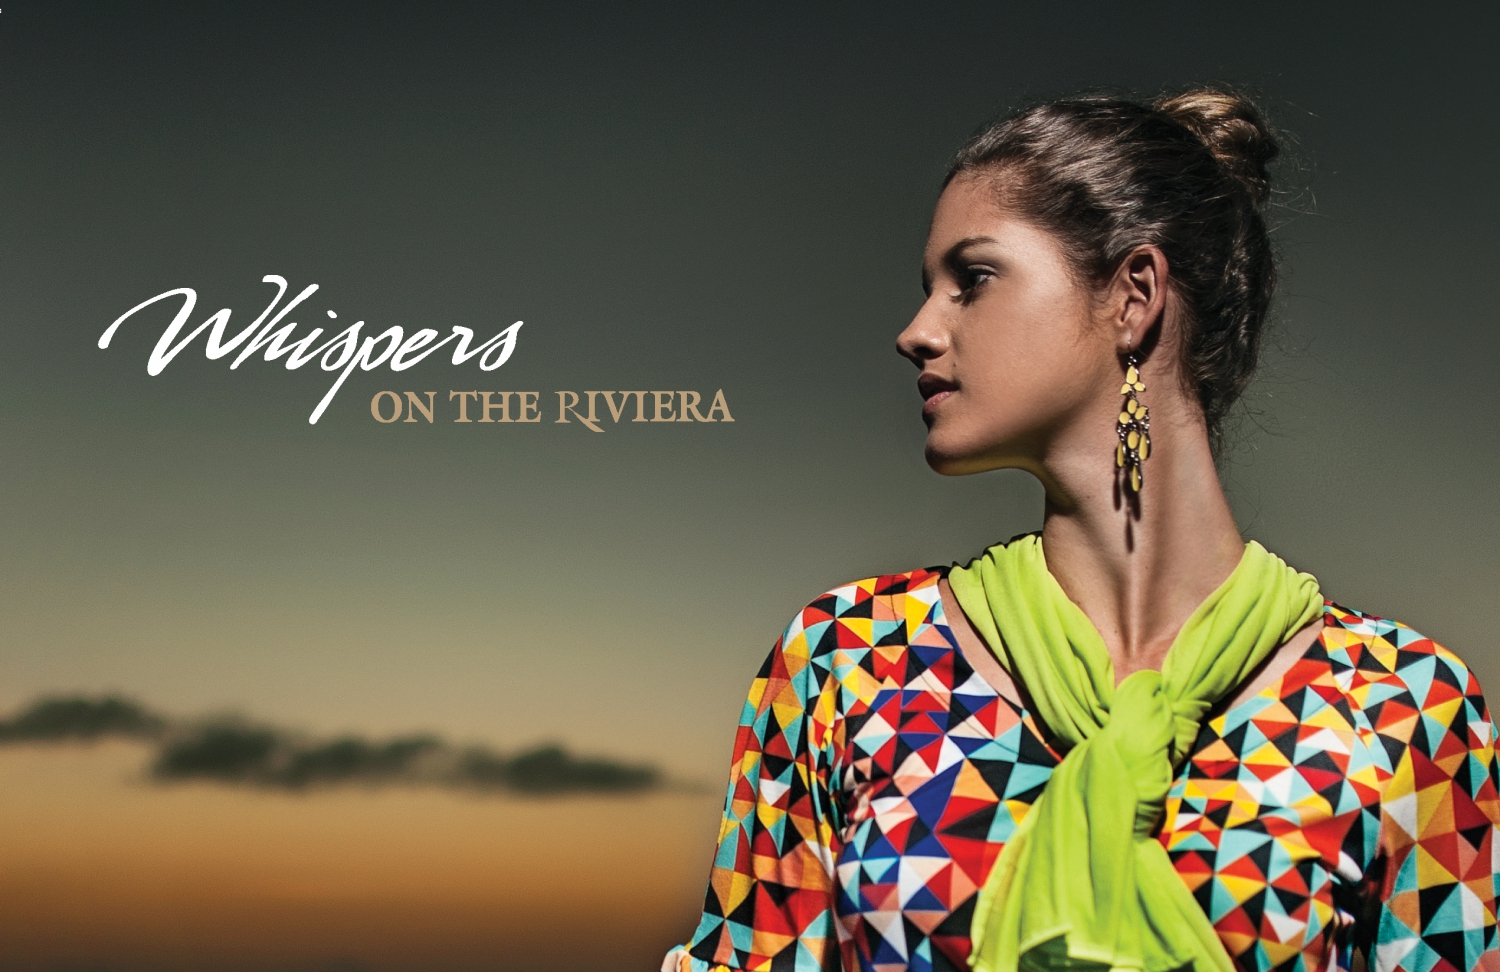 Whispers on the Riviera